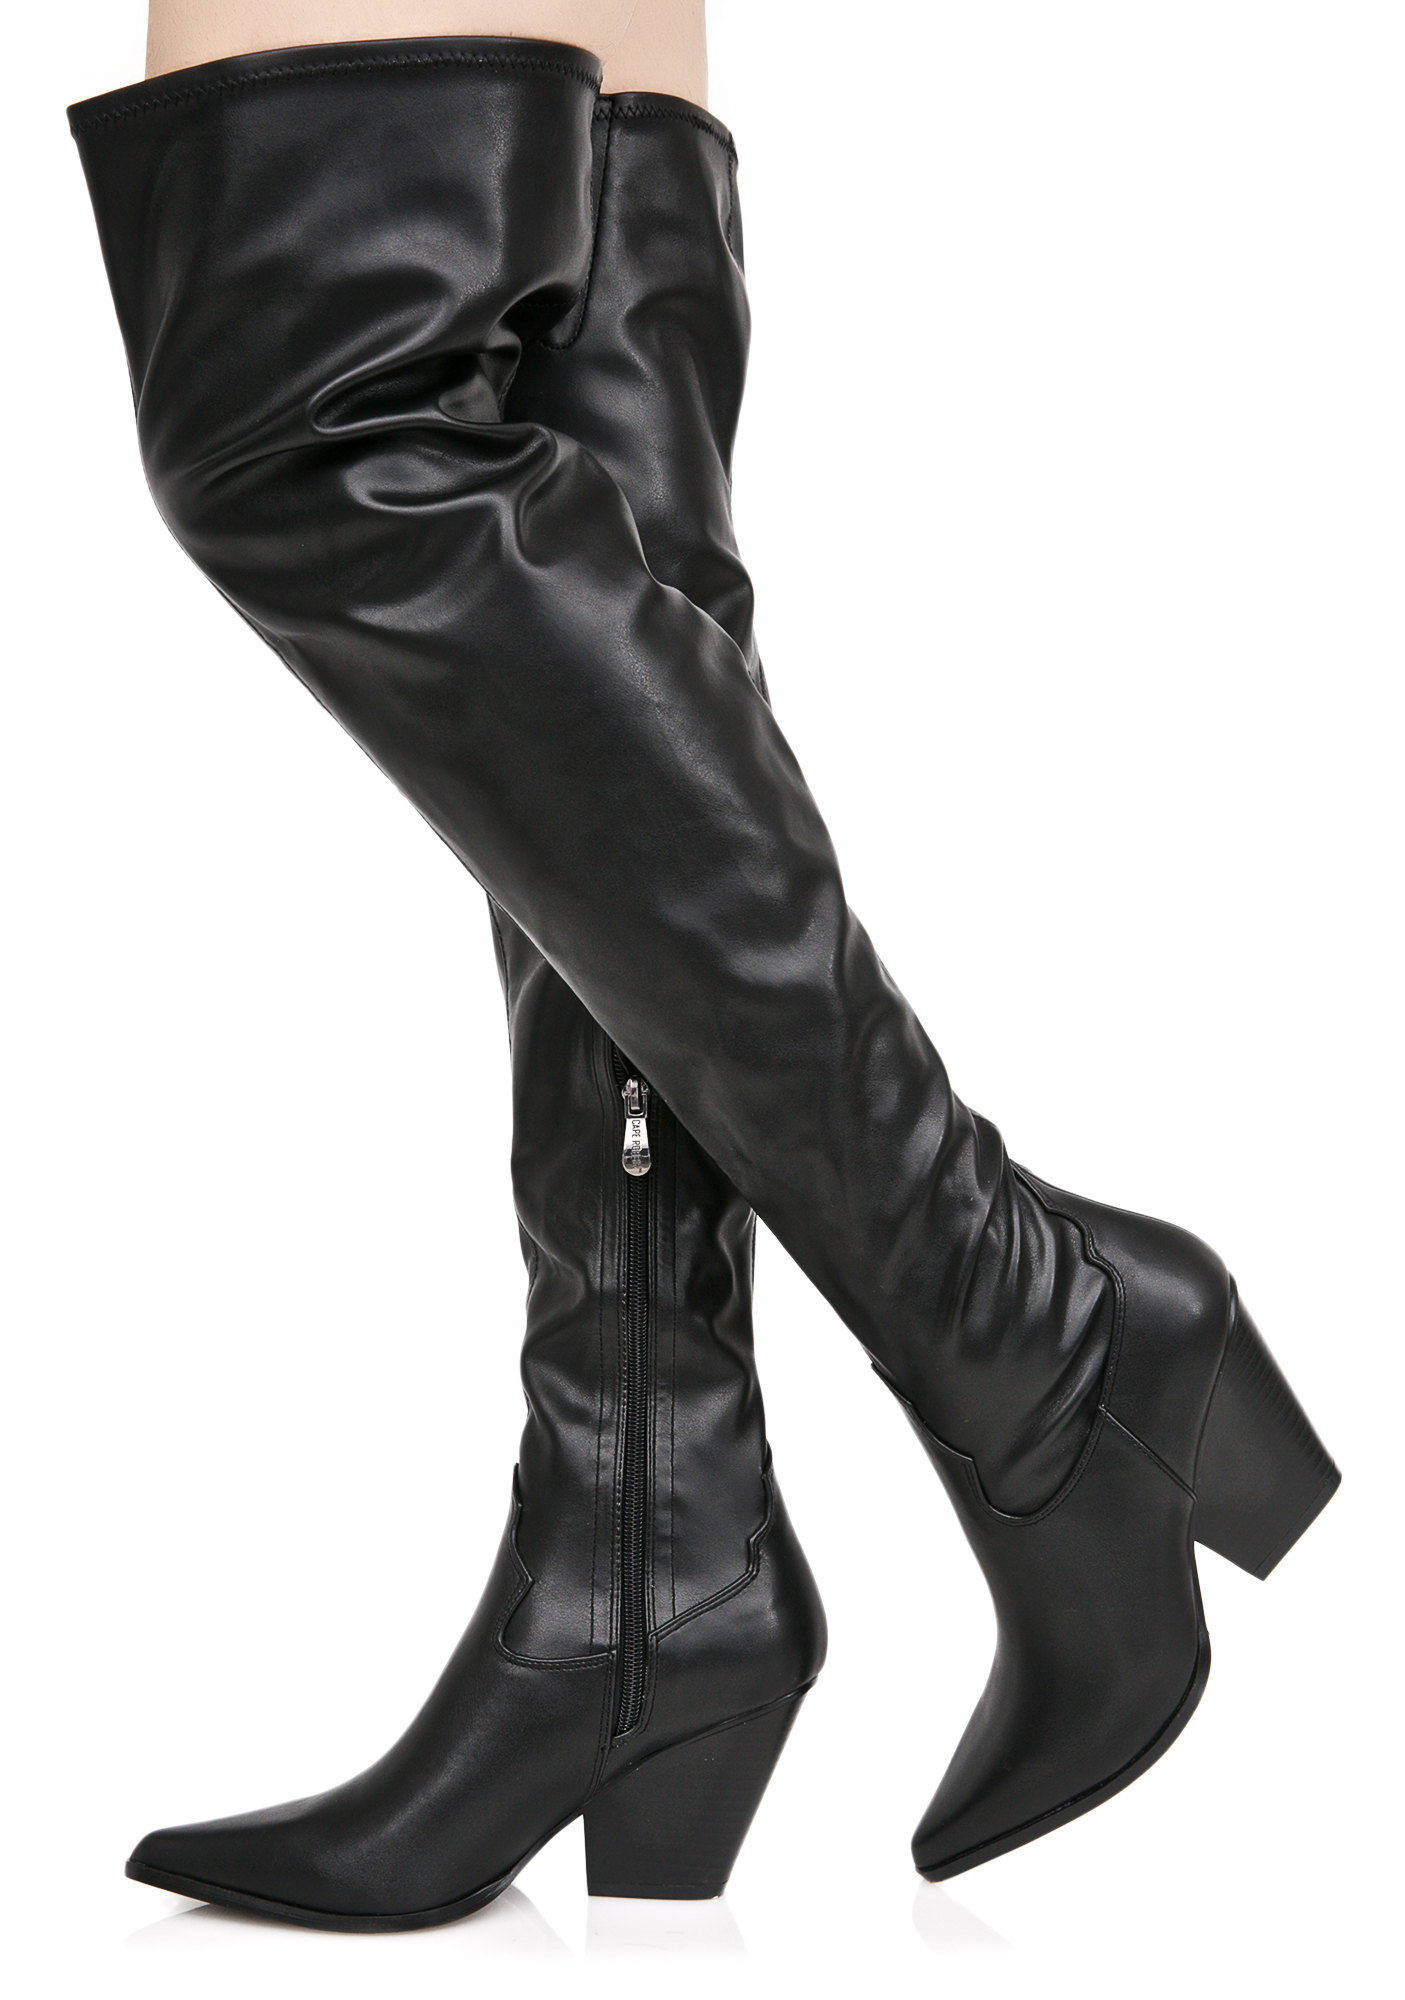 Vegan Leather Thigh High Cowboy Boots